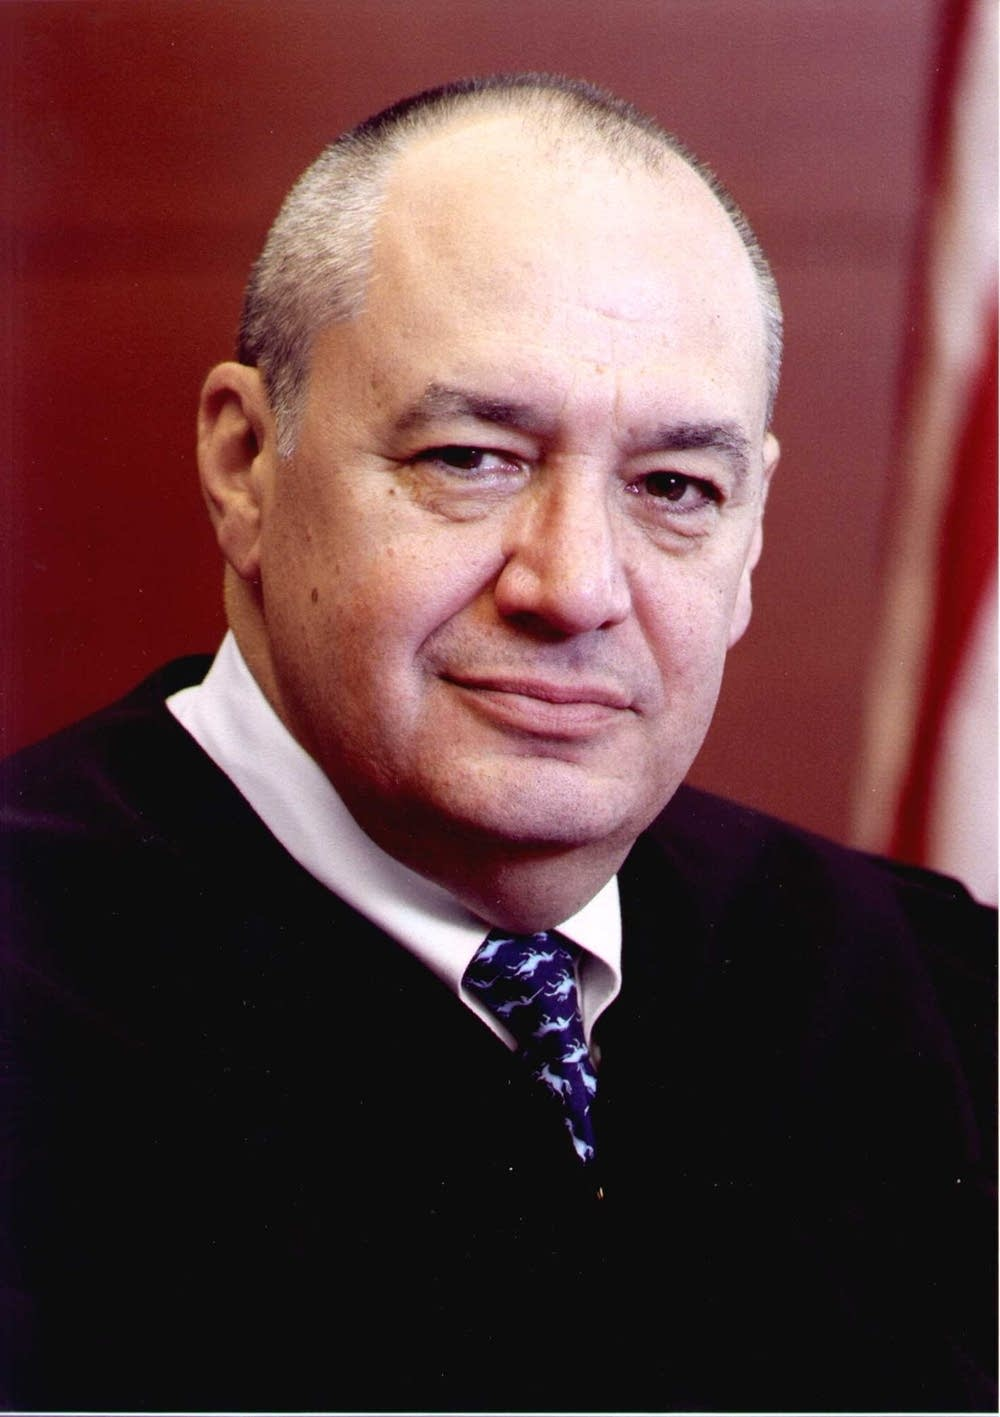 Judge James M. Rosenbaum